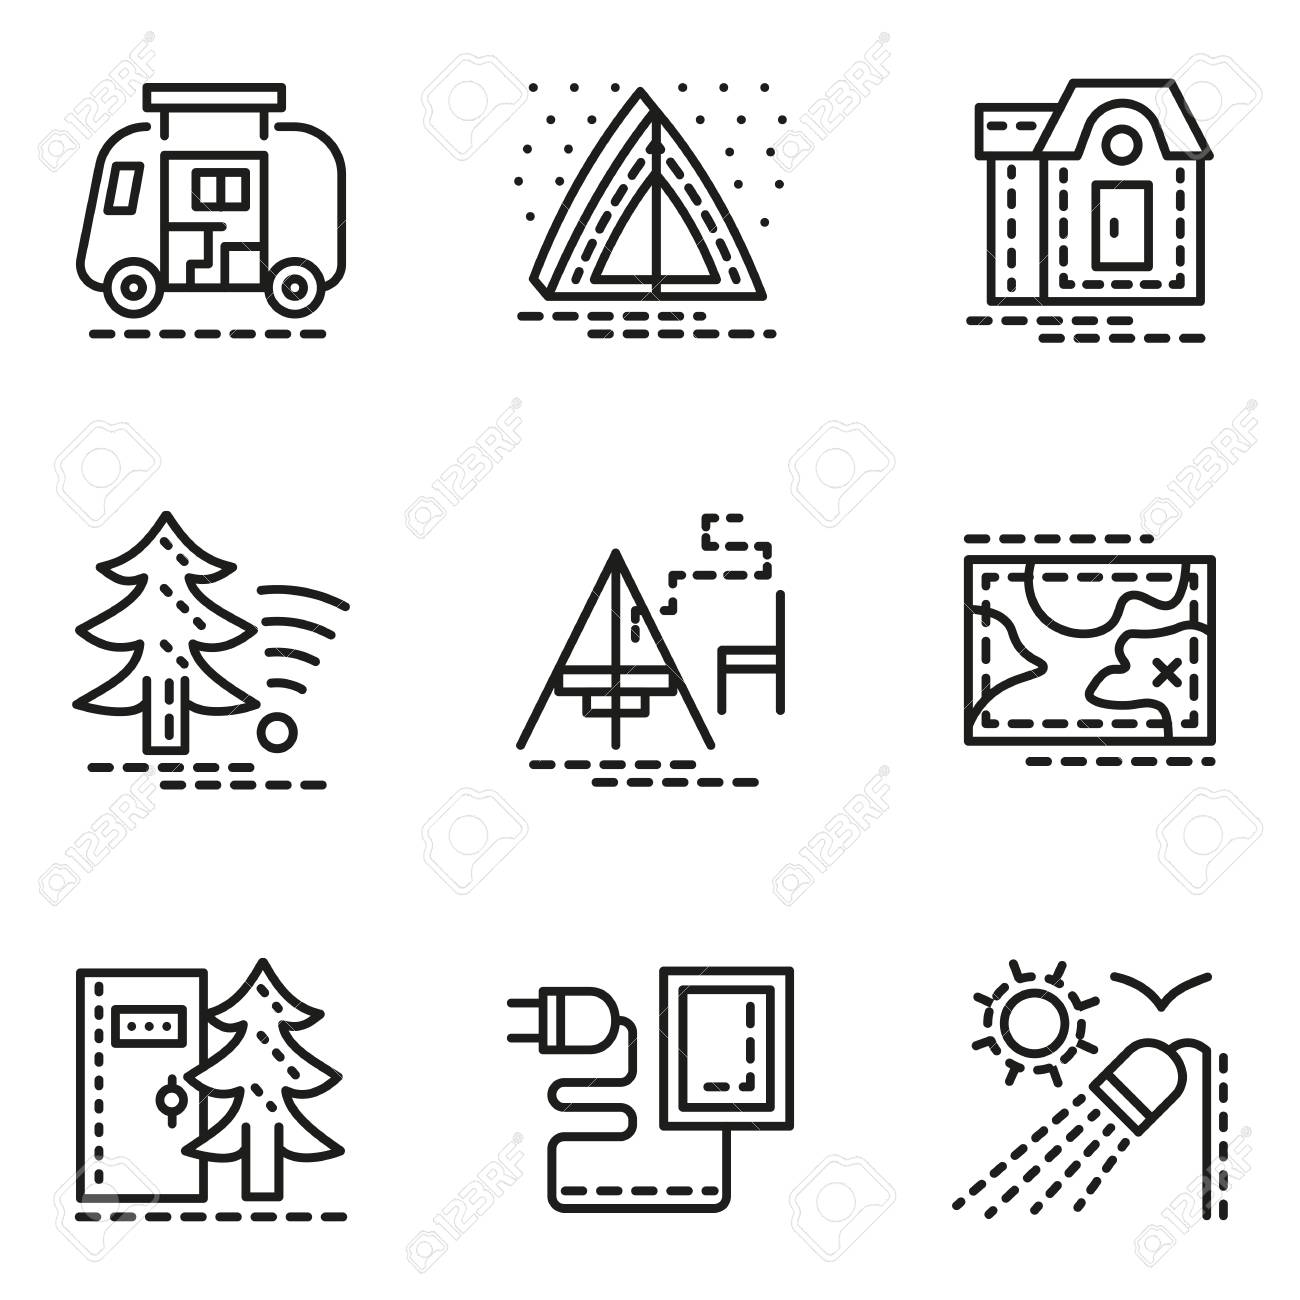 Symbols of comfort camping flat line style vector icons set symbols of comfort camping flat line style vector icons set tent navigation biocorpaavc Images